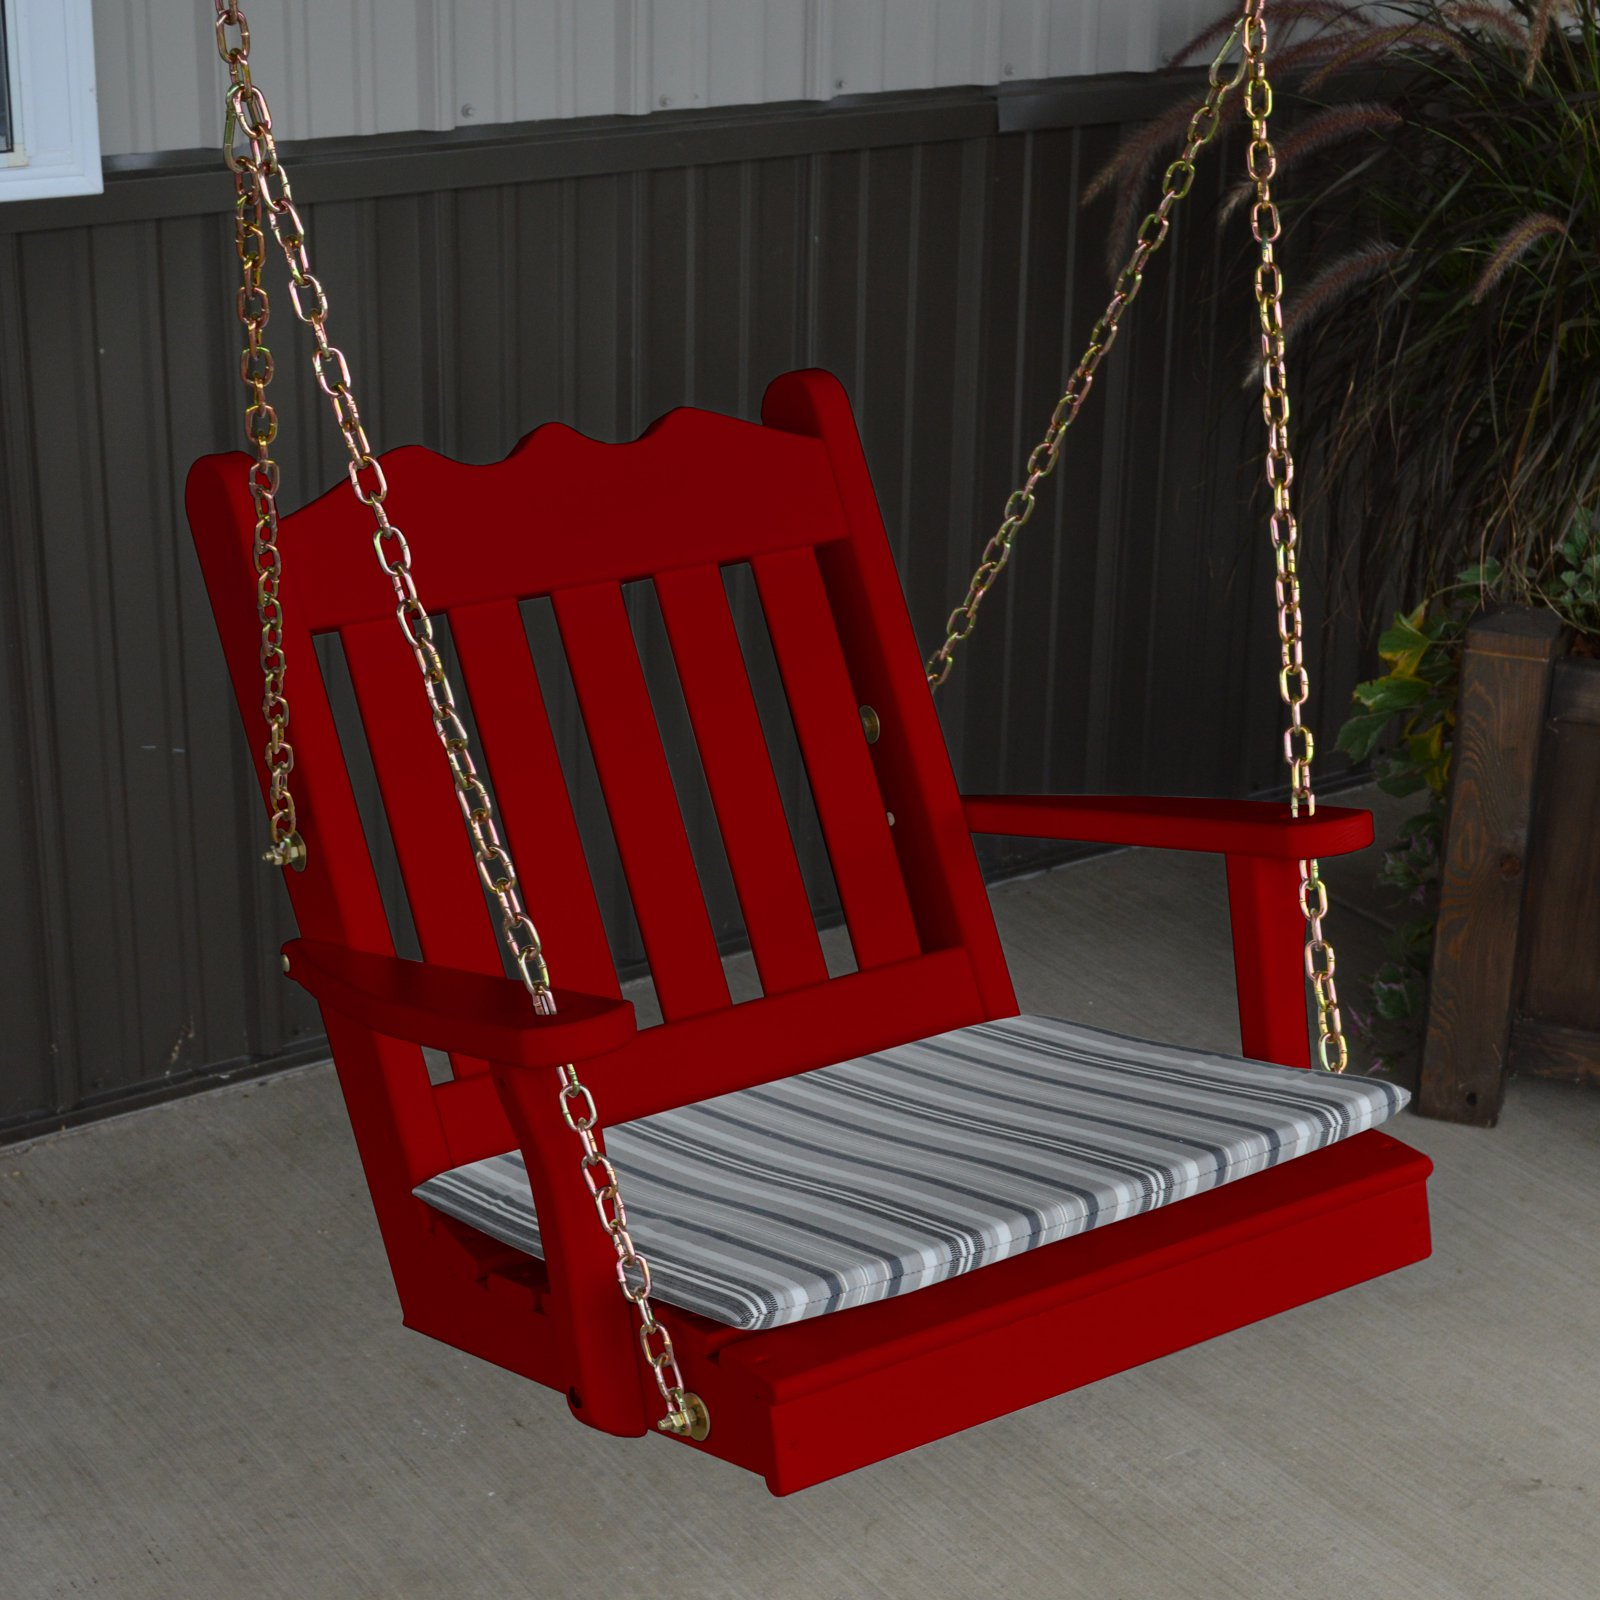 A & L Furniture Yellow Pine Royal English 2 ft. Chair Swing with Chains